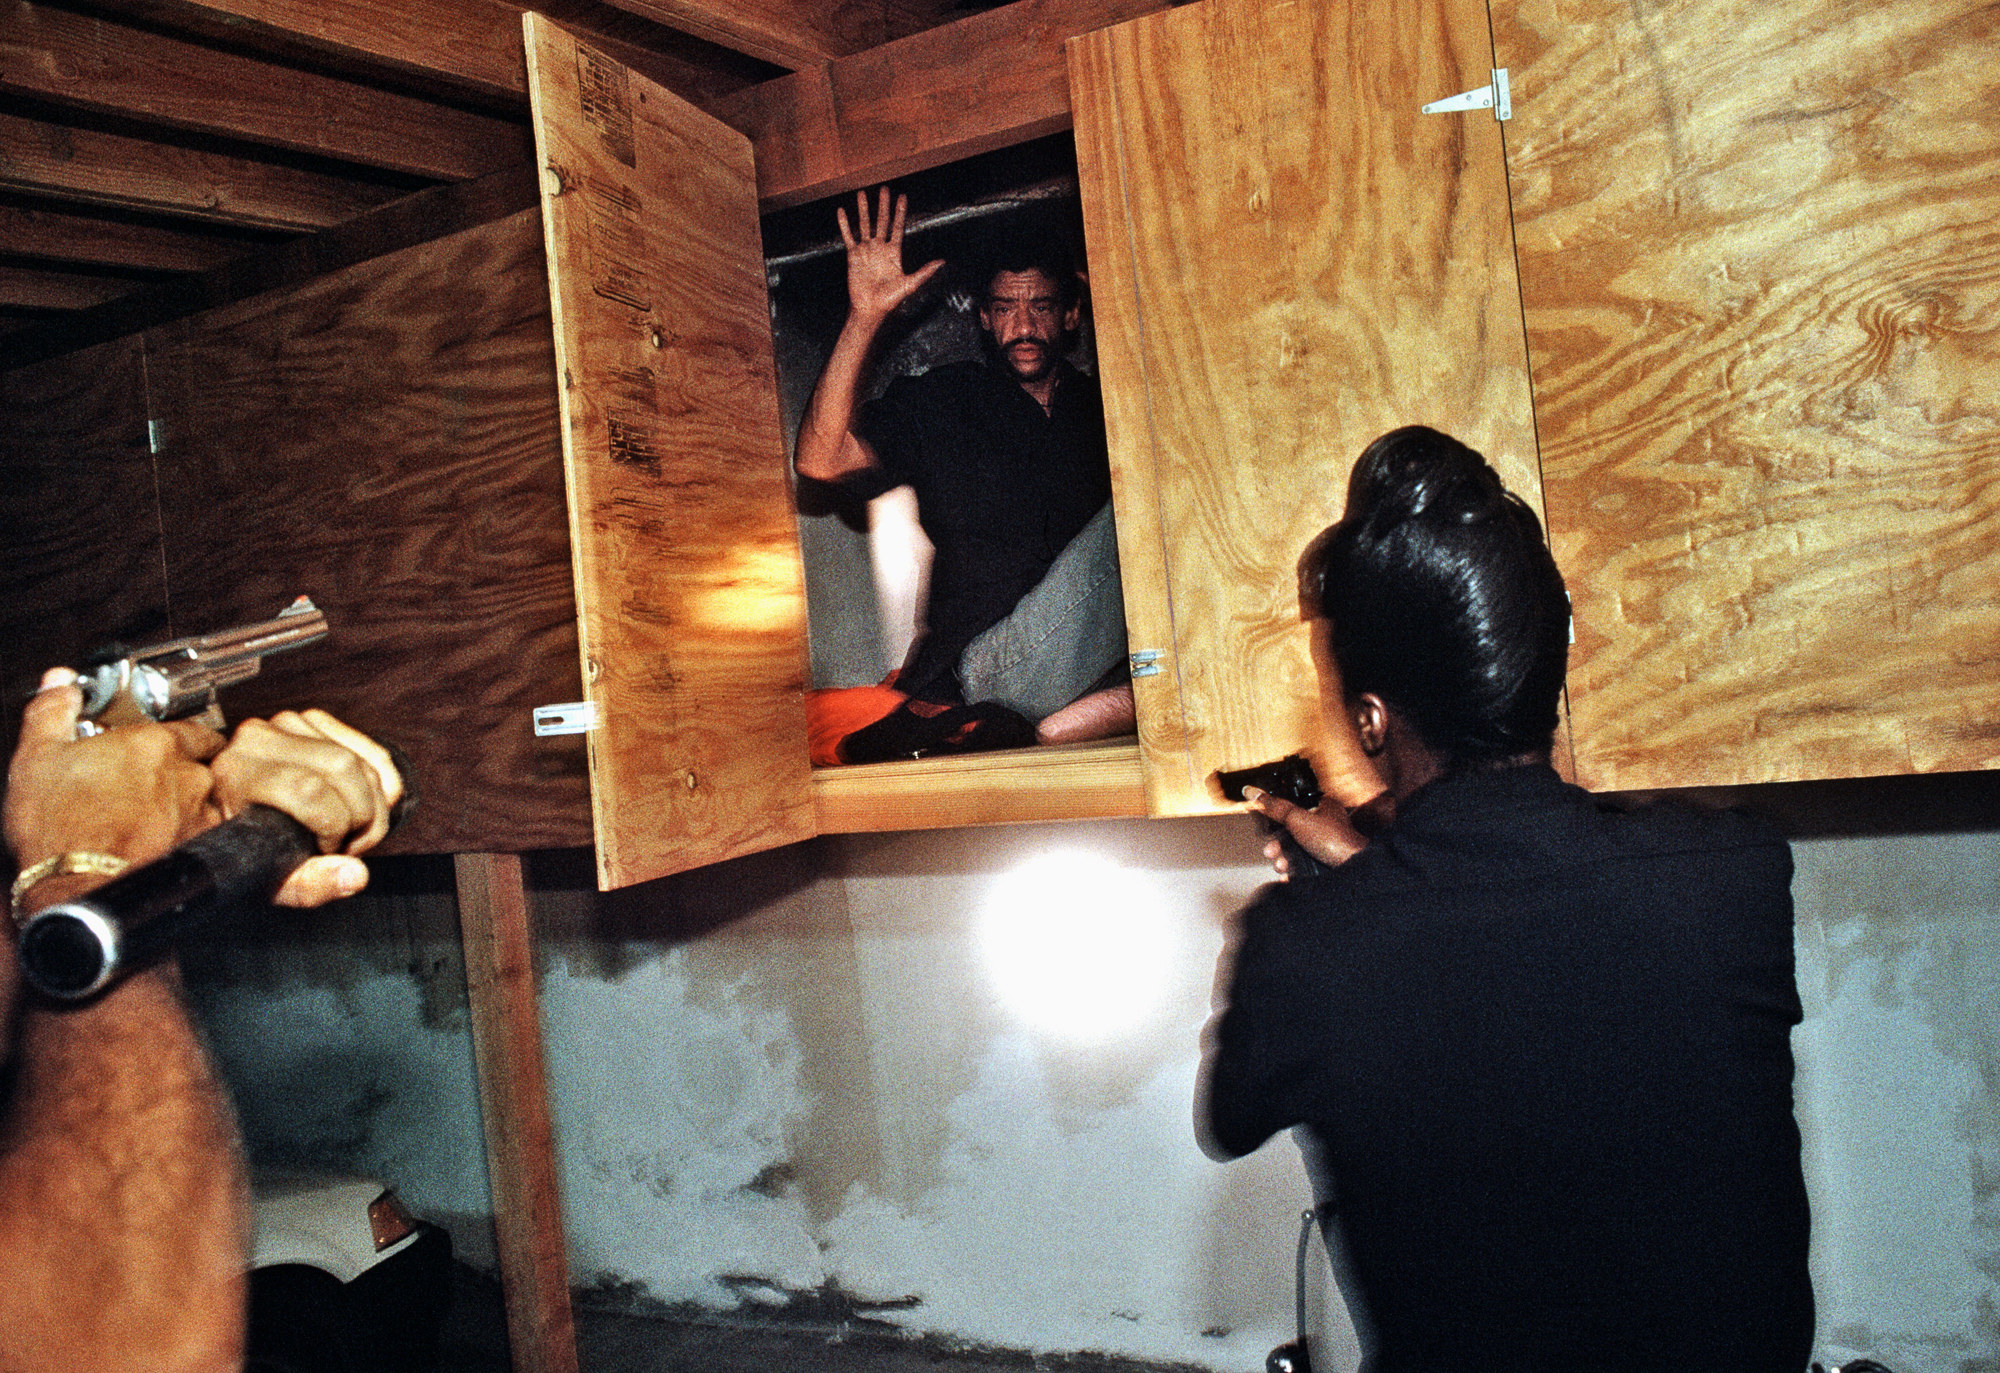 A man seen in a plywood cupboard with his hands up as two officers are seen from behind approaching with guns